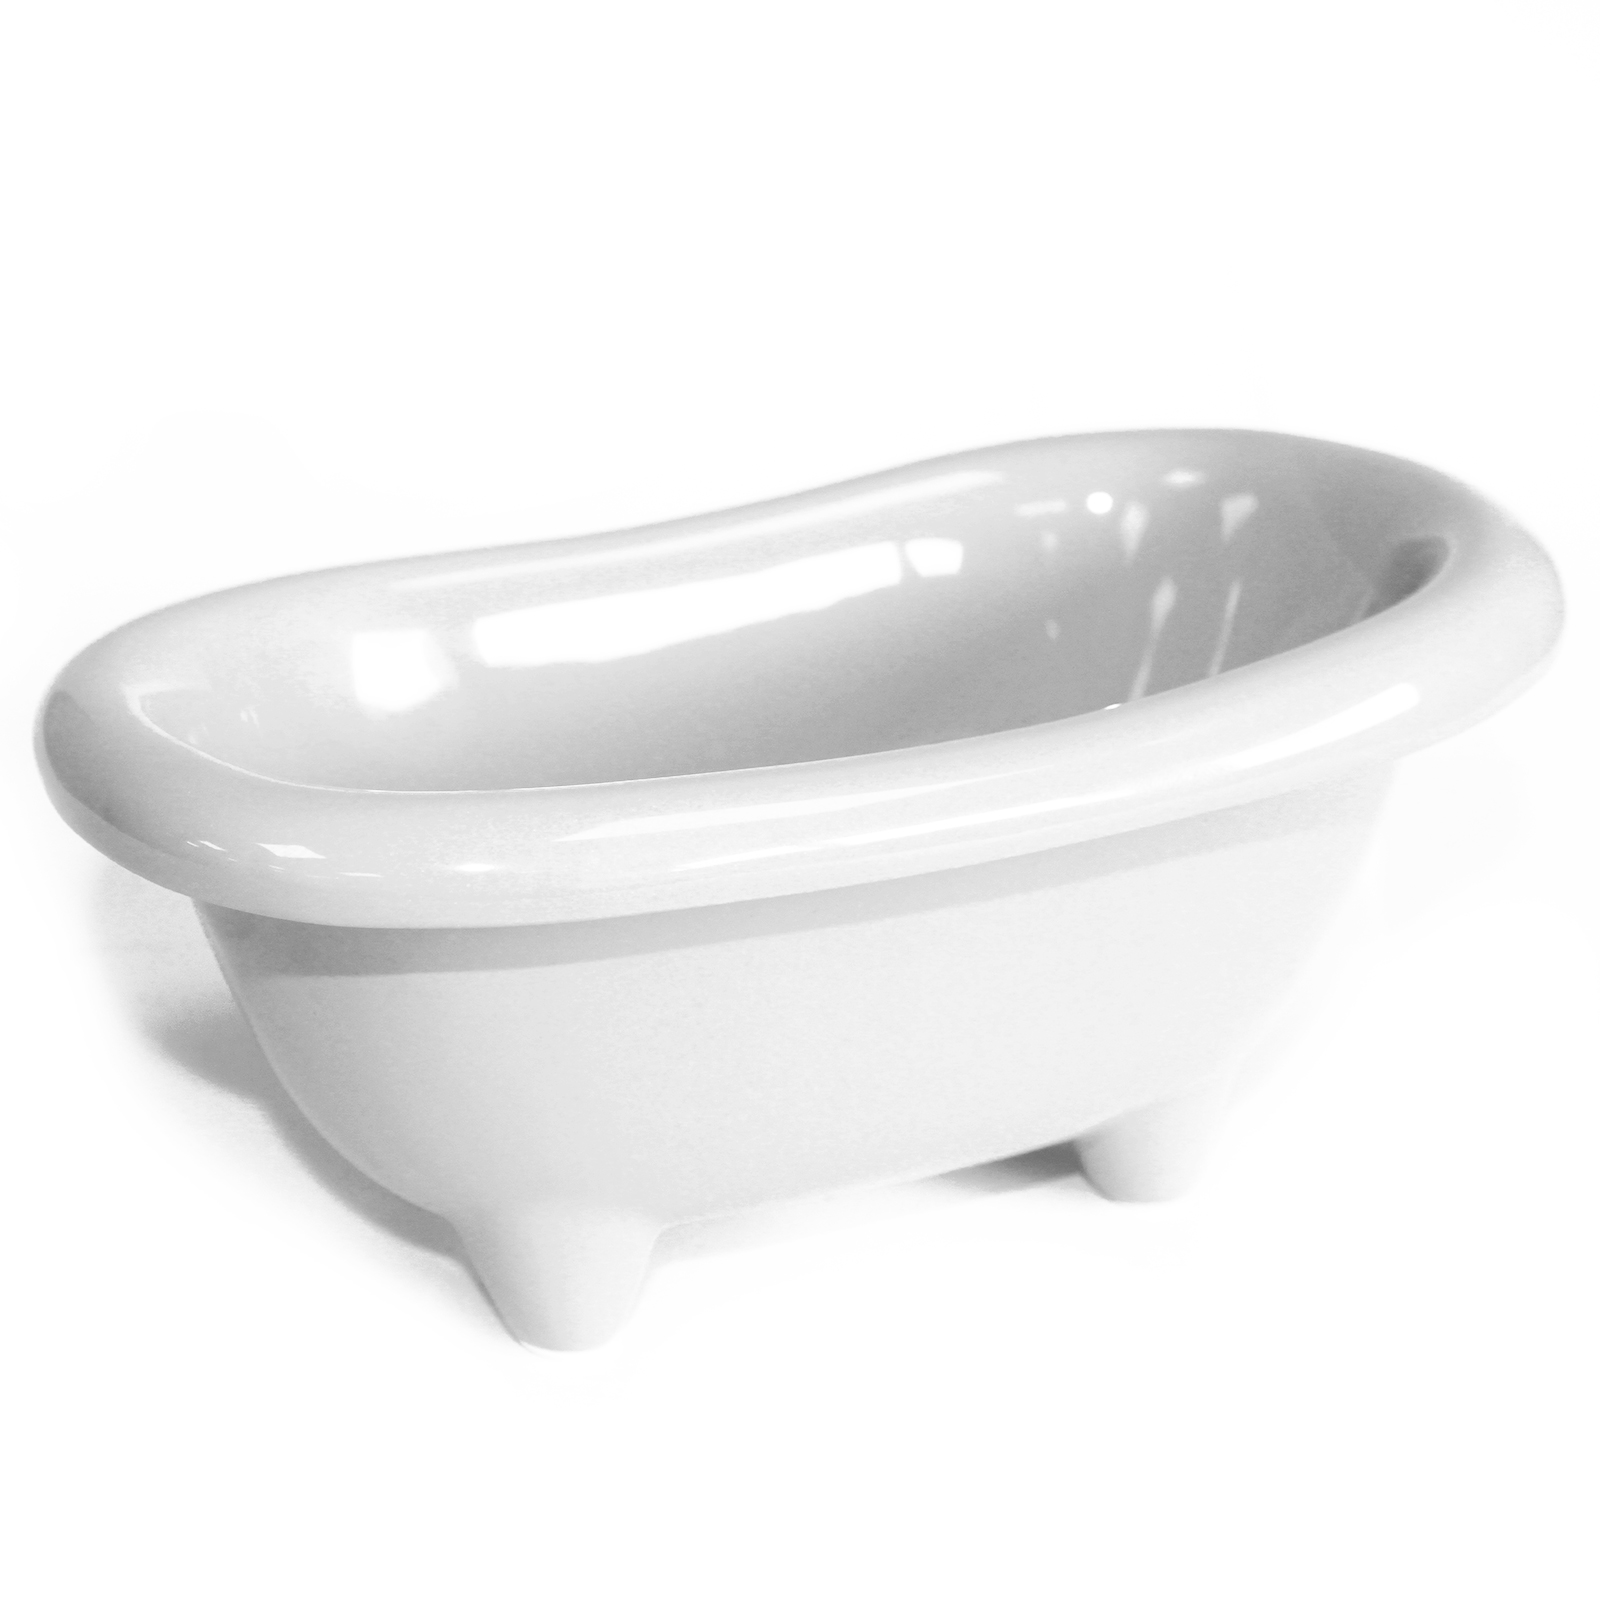 Ceramic Mini Bath - White